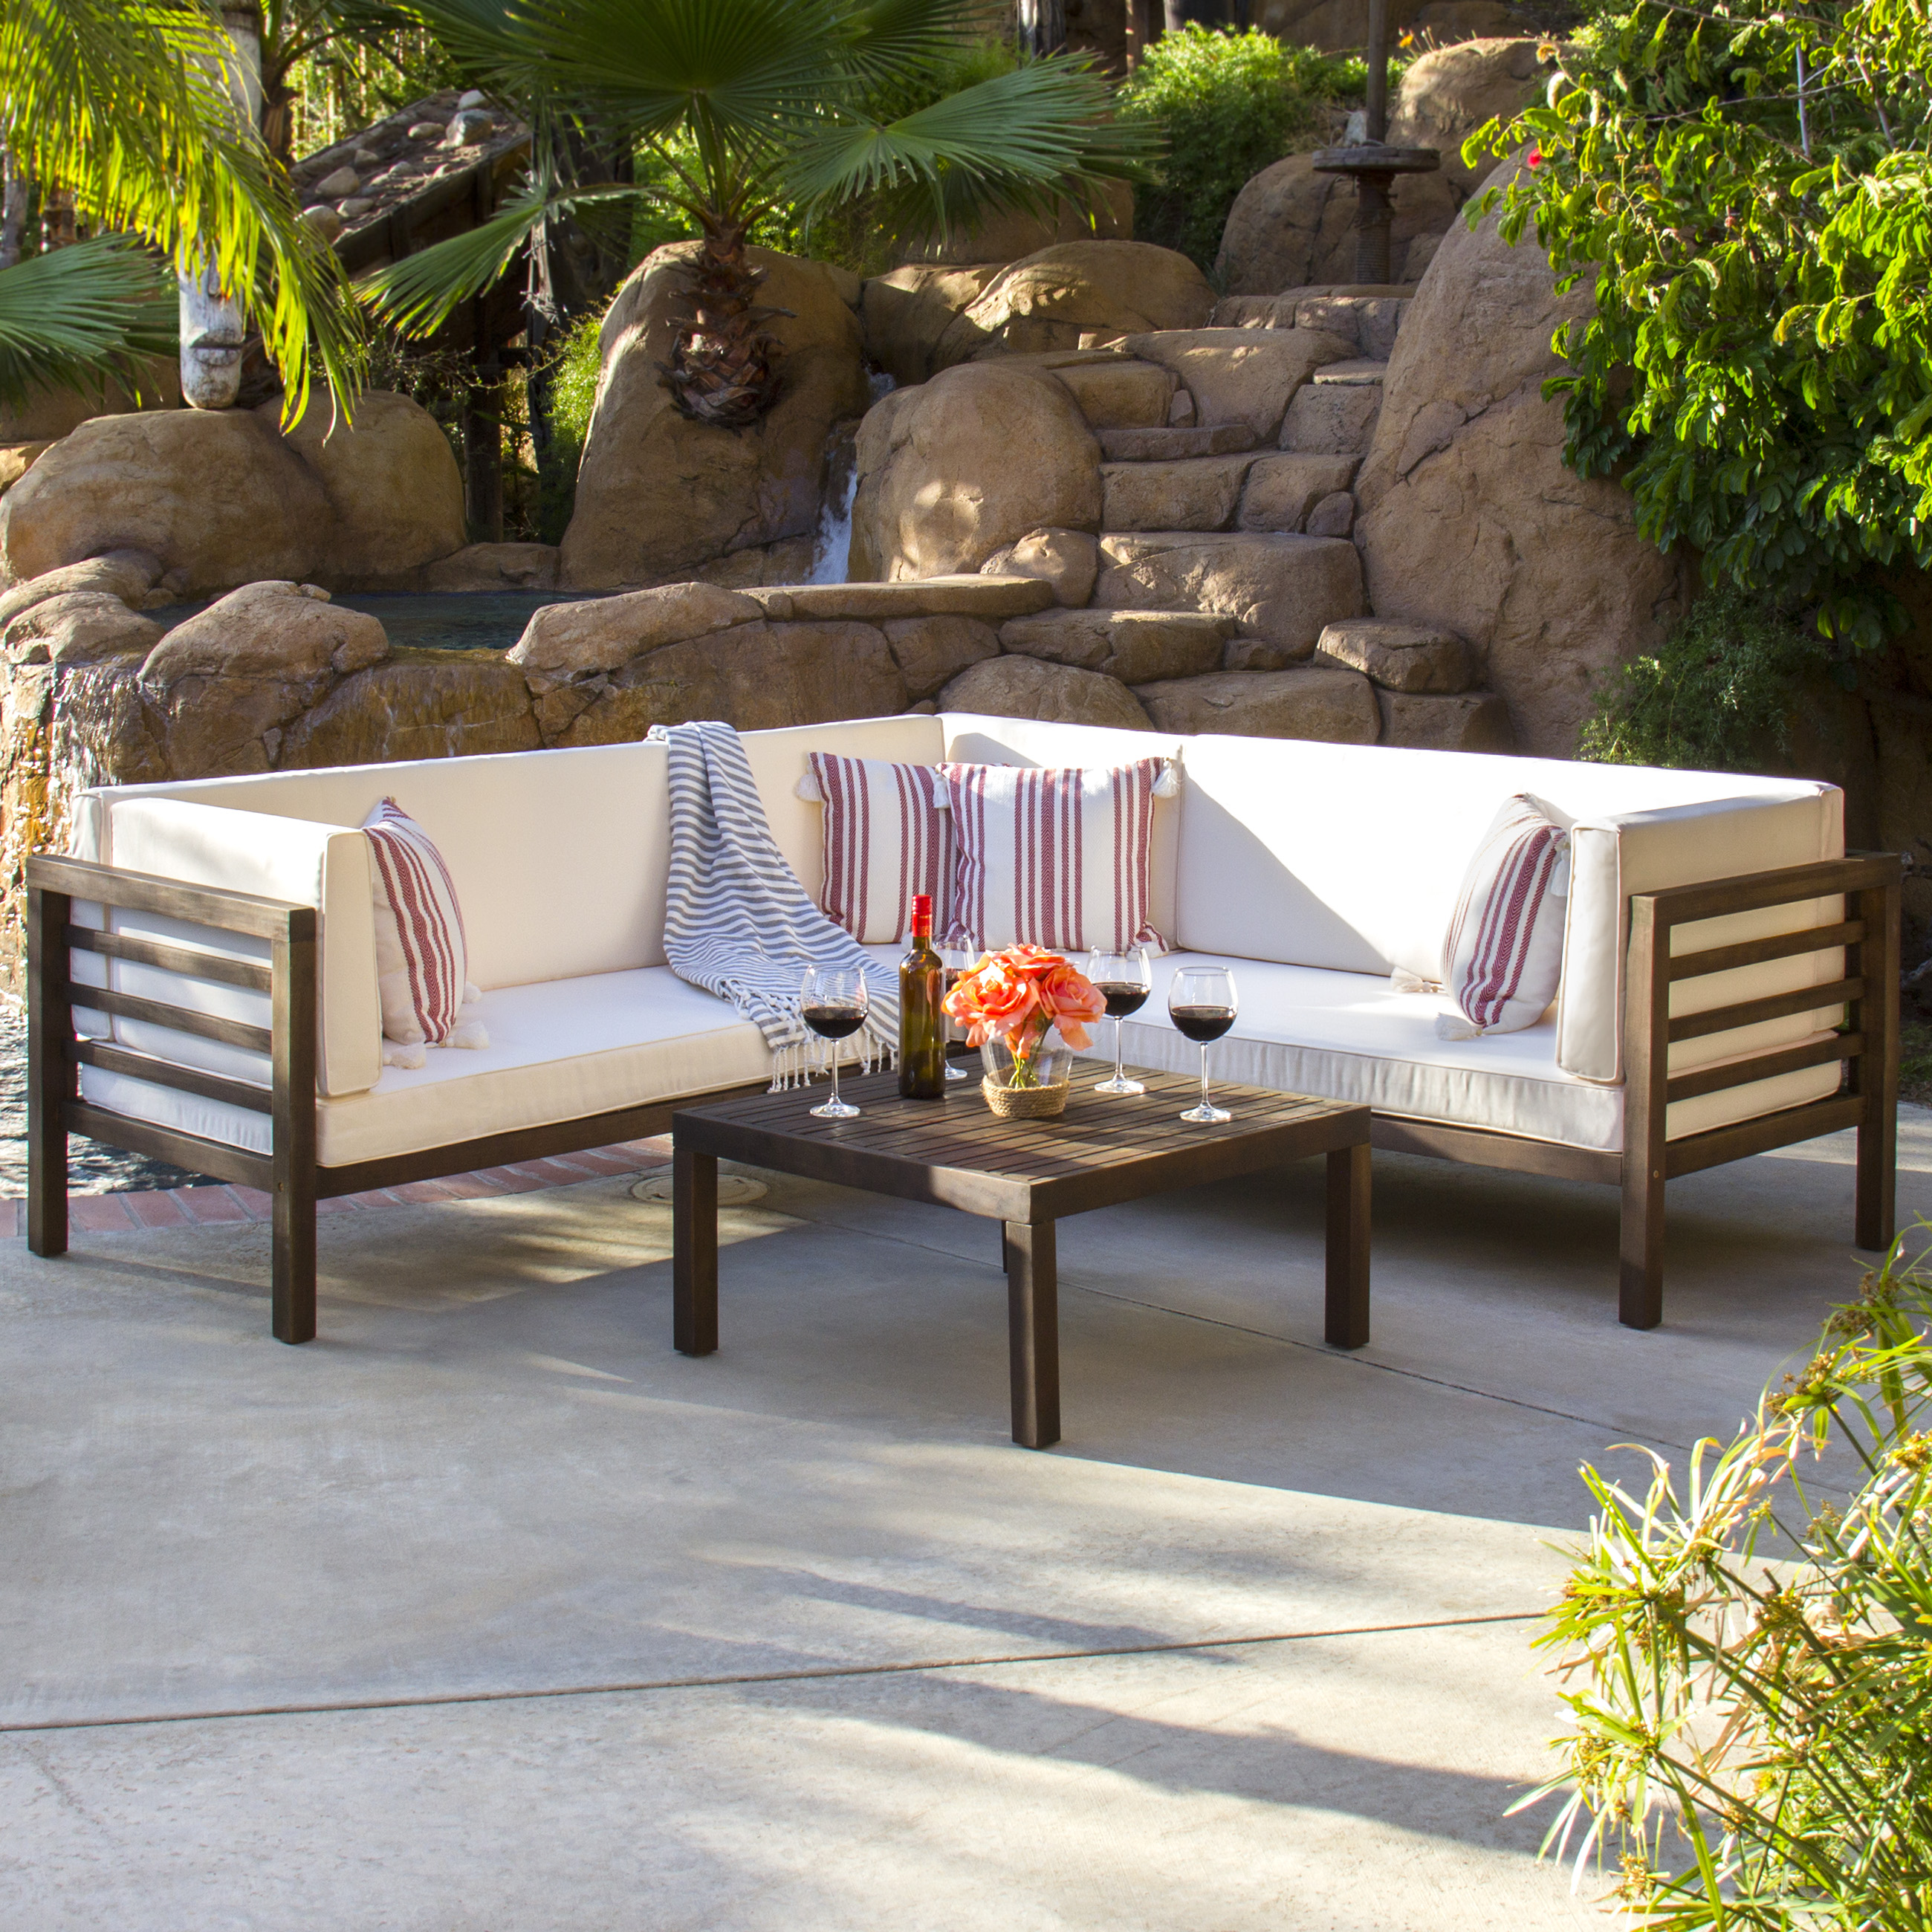 Super Best Choice Products 4 Piece Acacia Wood Outdoor Patio Sectional Sofa Set W Water Resistant Cushions Table Espresso Gmtry Best Dining Table And Chair Ideas Images Gmtryco